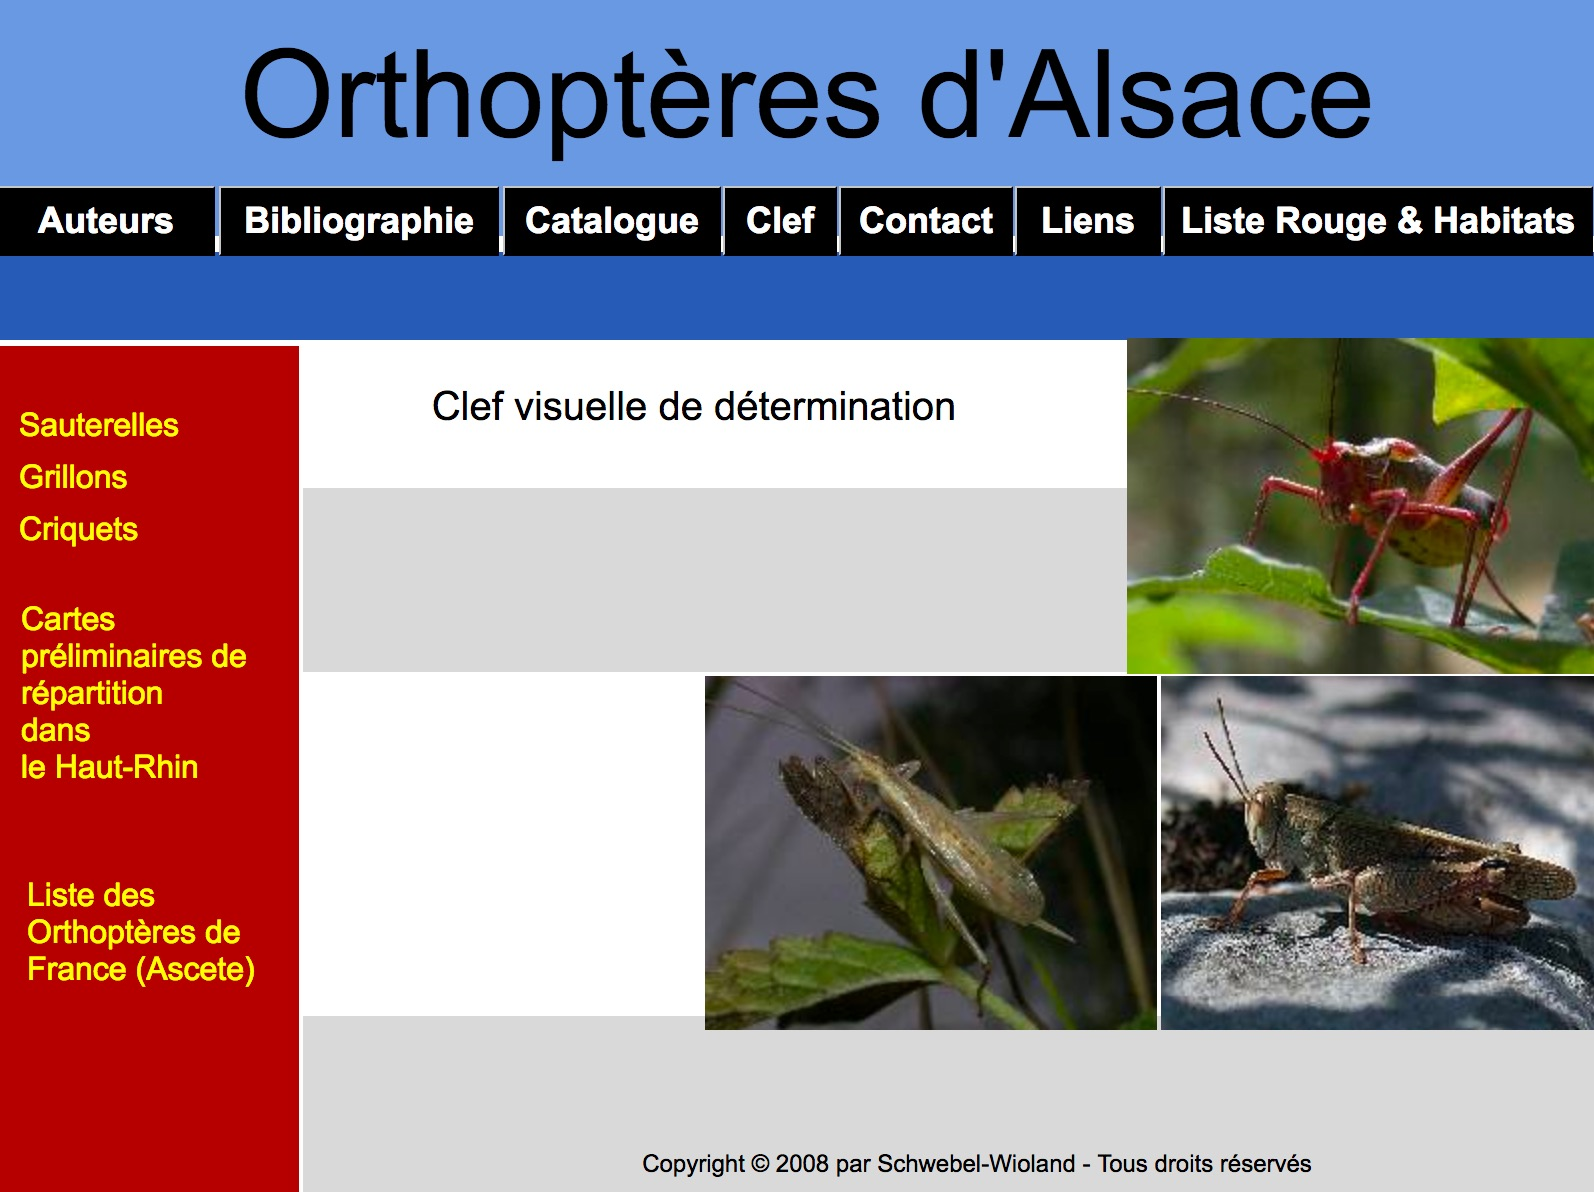 http://files.biolovision.net/www.faune-alsace.org/userfiles/Insectes/ORTHOPTERA/sitewebLS.jpg